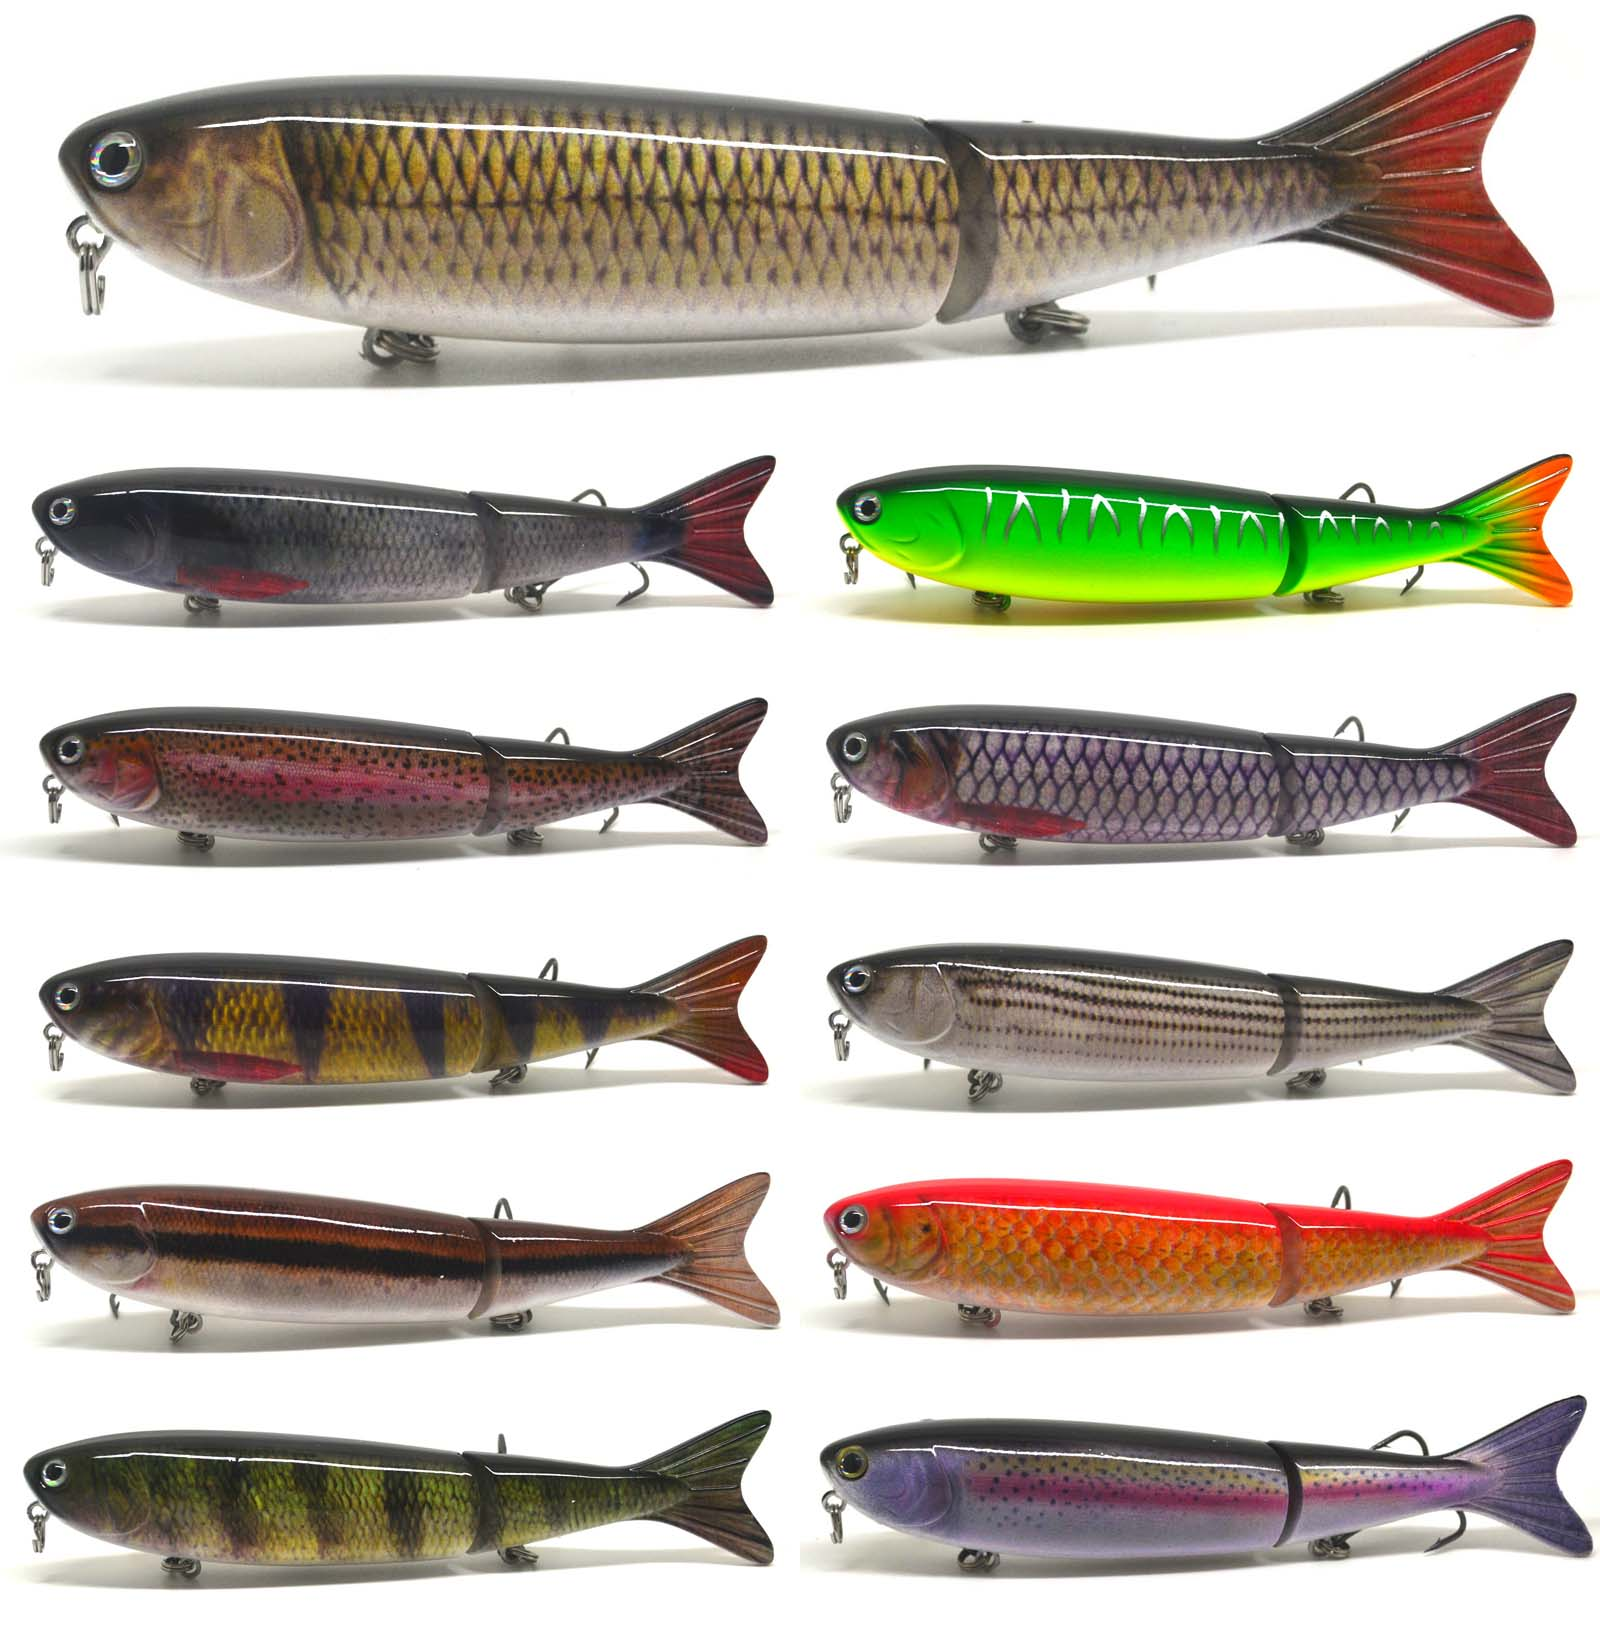 Multi jointed bass pike perch fishing bait swimbait lure for Perch fishing lures